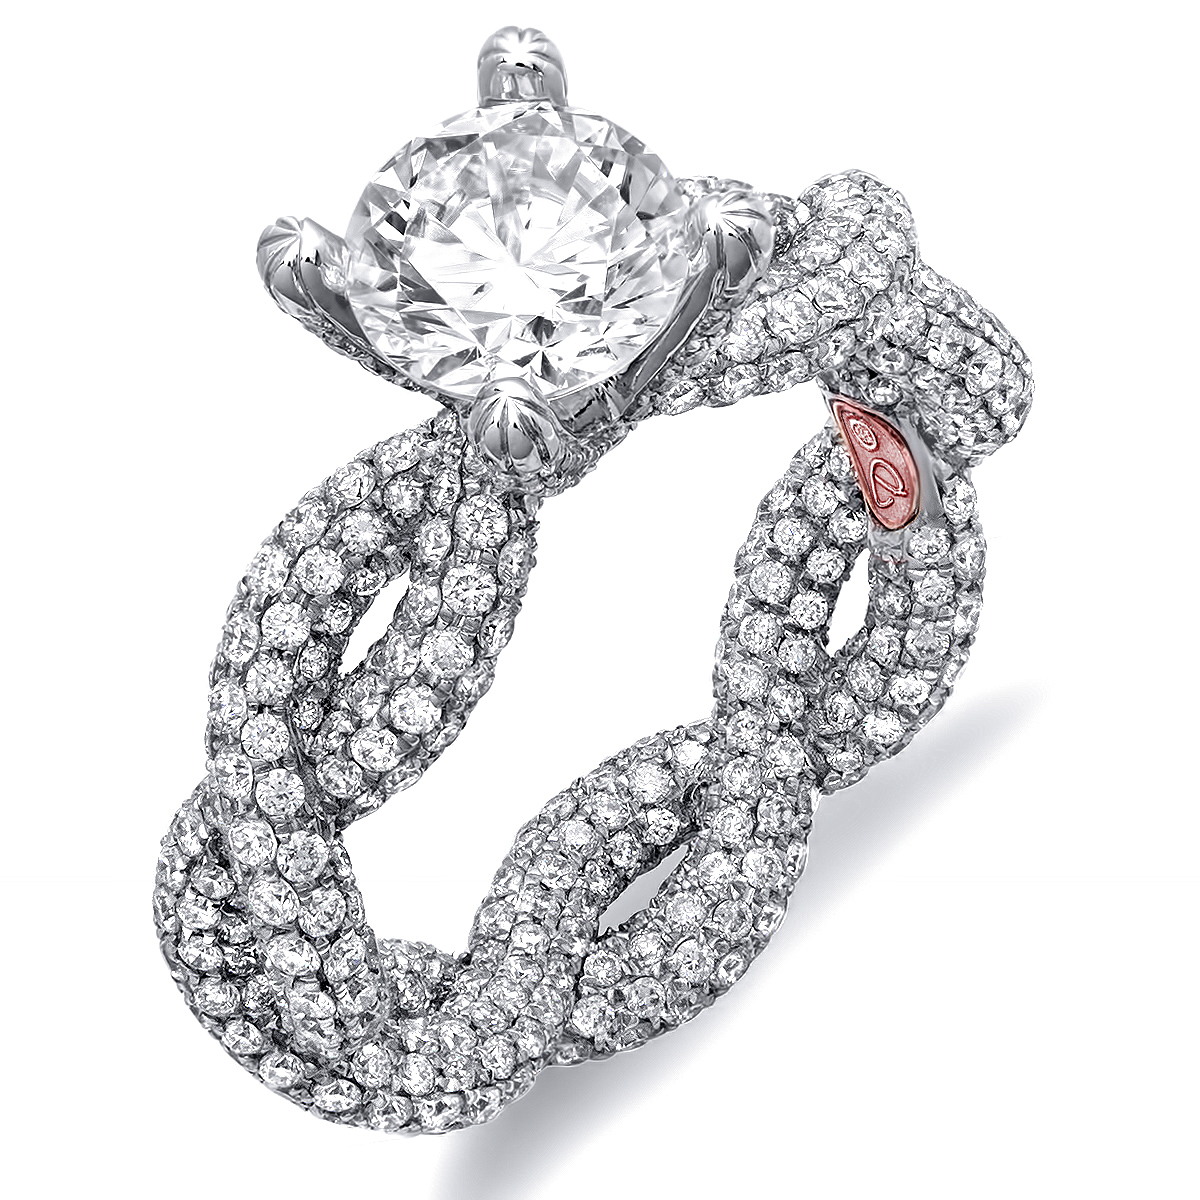 3 most expensive wedding rings Designer Engagement Rings In Mystic